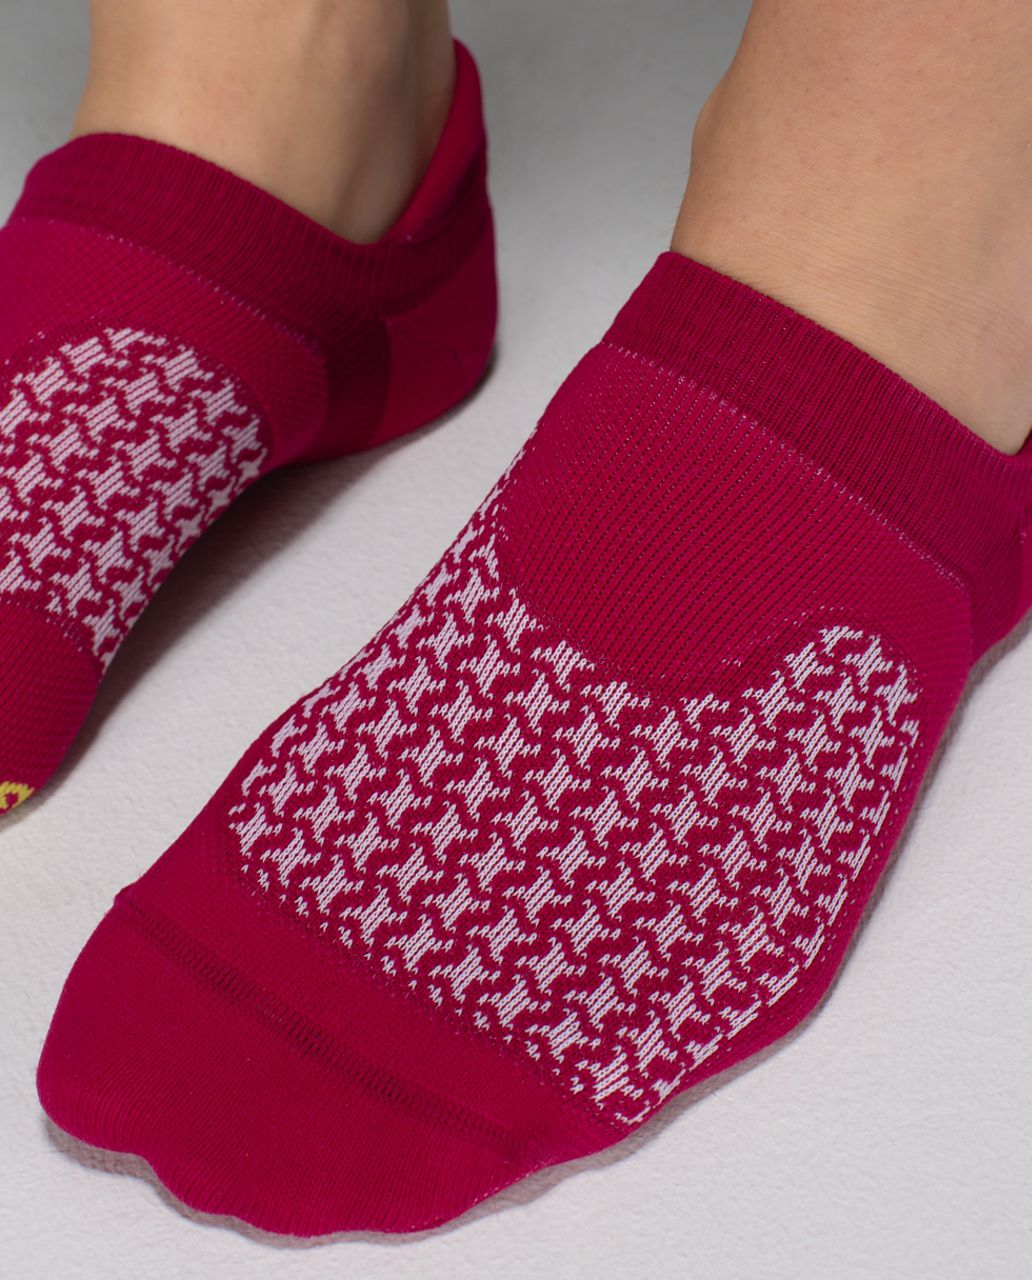 Lululemon Women's Ultimate No Show Run Sock *Ergo Toes - Houndstooth Bumble Berry